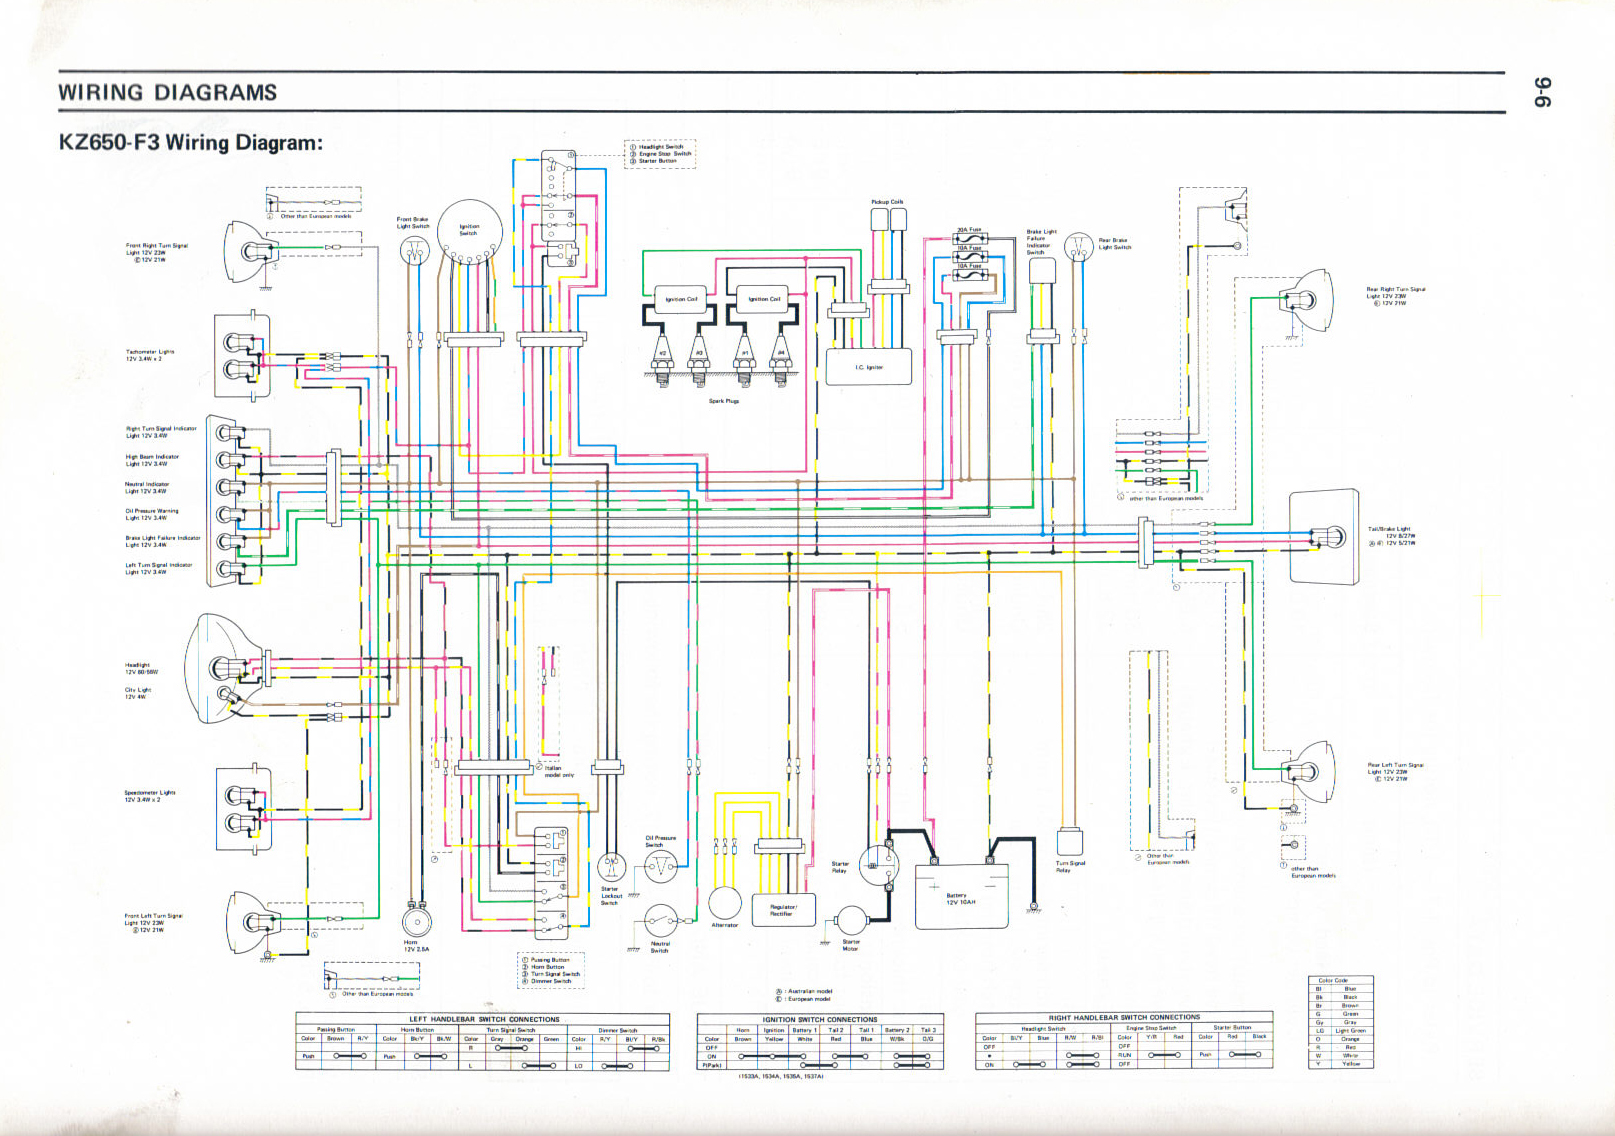 KZ650 F3 kz650 info wiring diagrams Wiring Harness Diagram at n-0.co